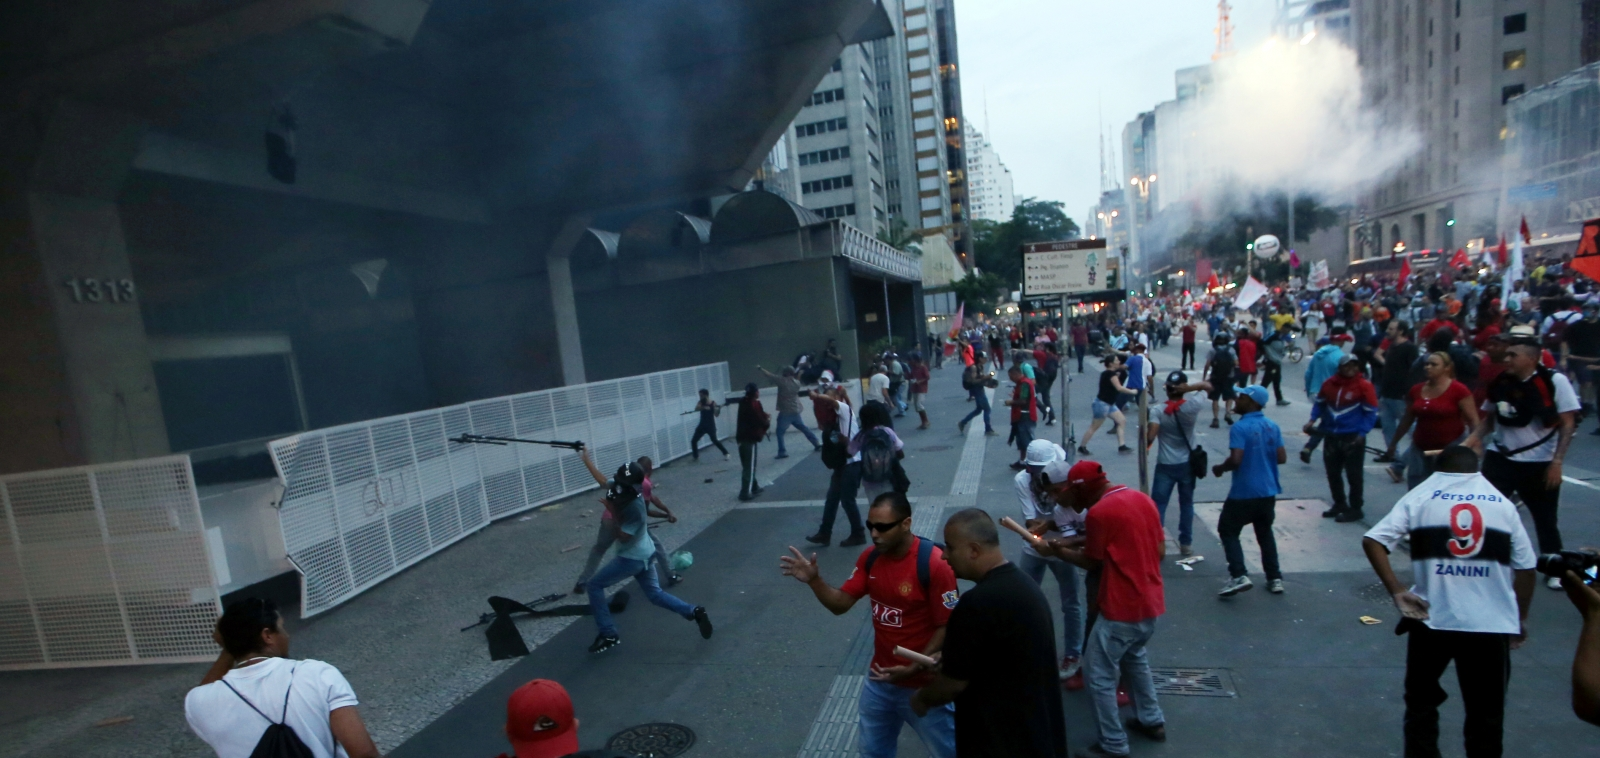 Brazil protest, austerity measures